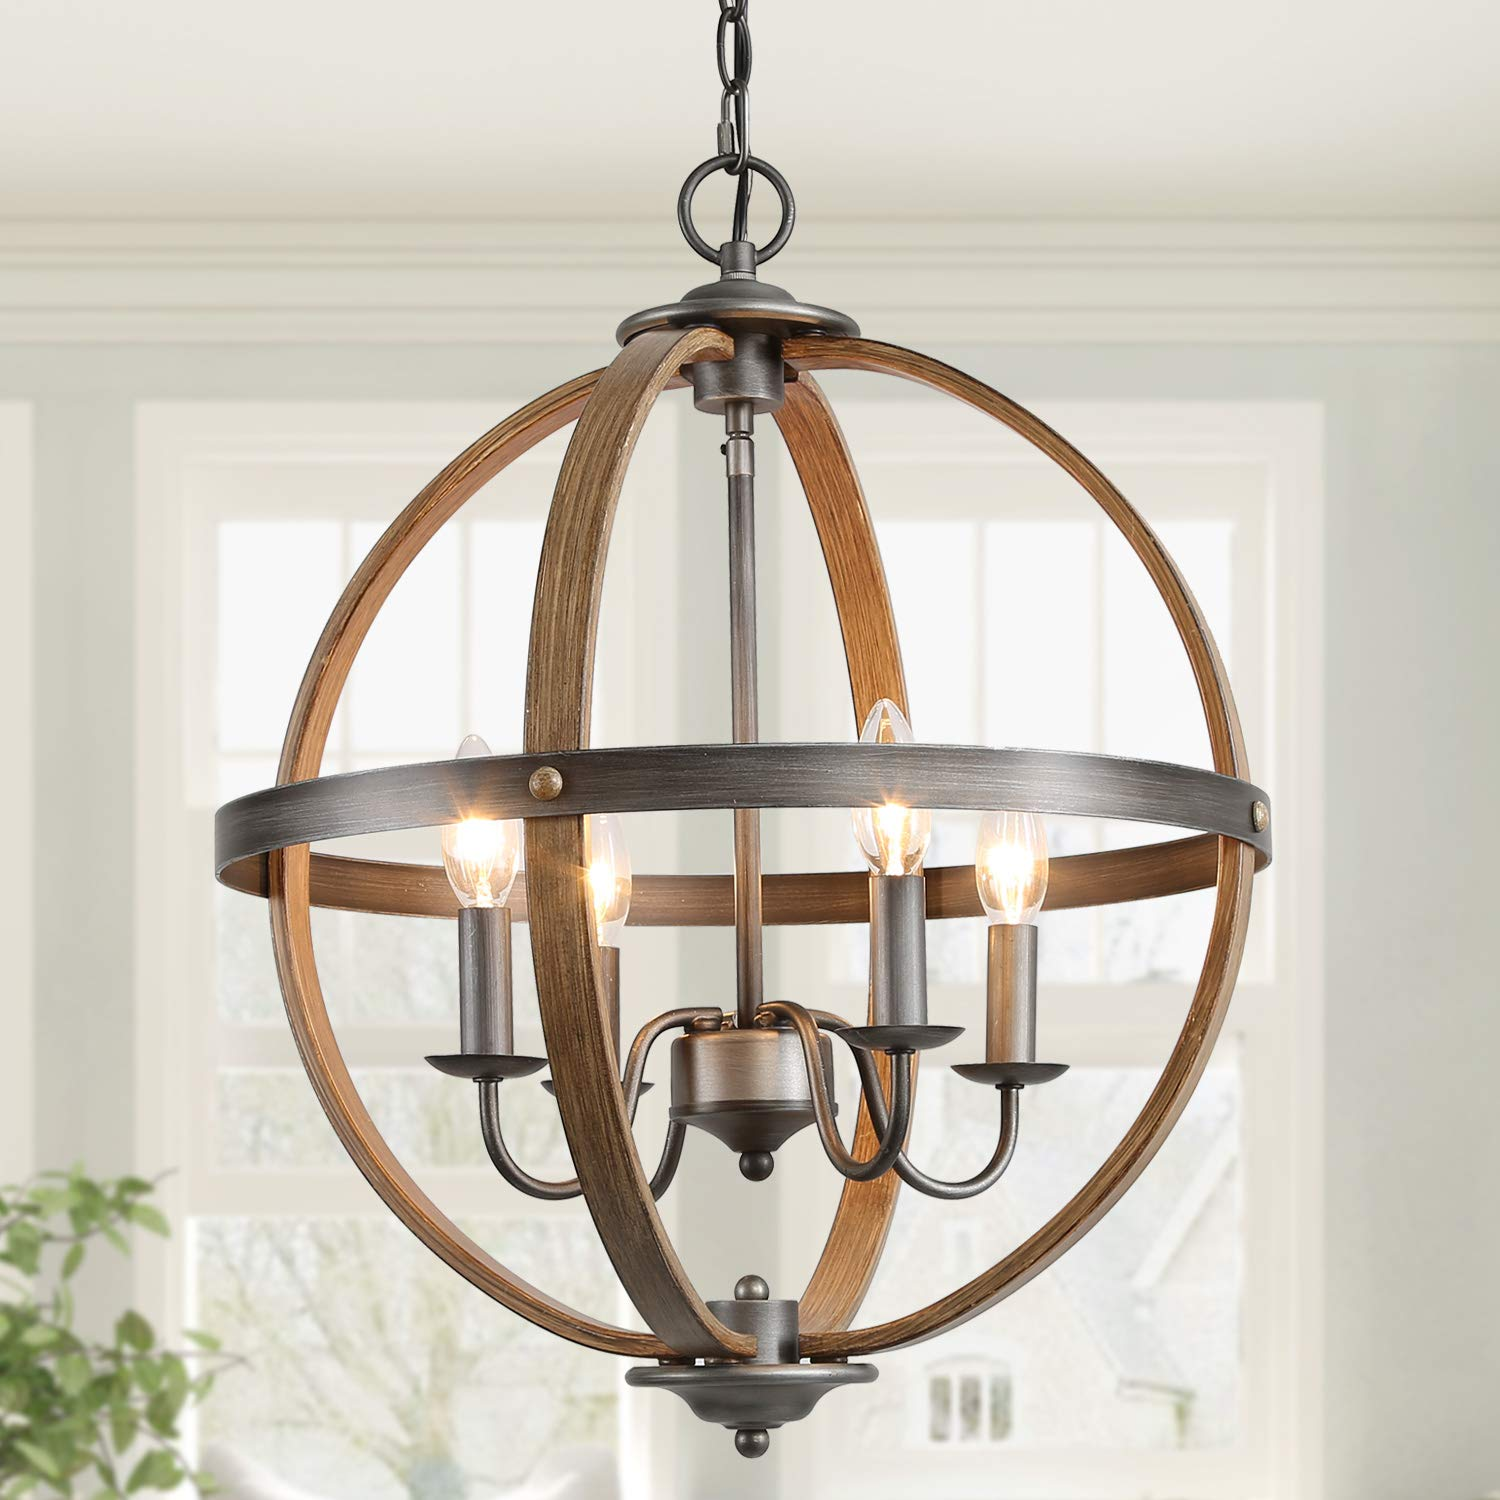 KSANA Farmhouse Chandeliers for Dining Rooms, 4 Lights Metal Dining Room Lighting Fixtures Ceiling Hanging, Orb Foyer Chandelier Lighting for Bedroom and Living Room, Faux Wood & Silver Brushed Finish